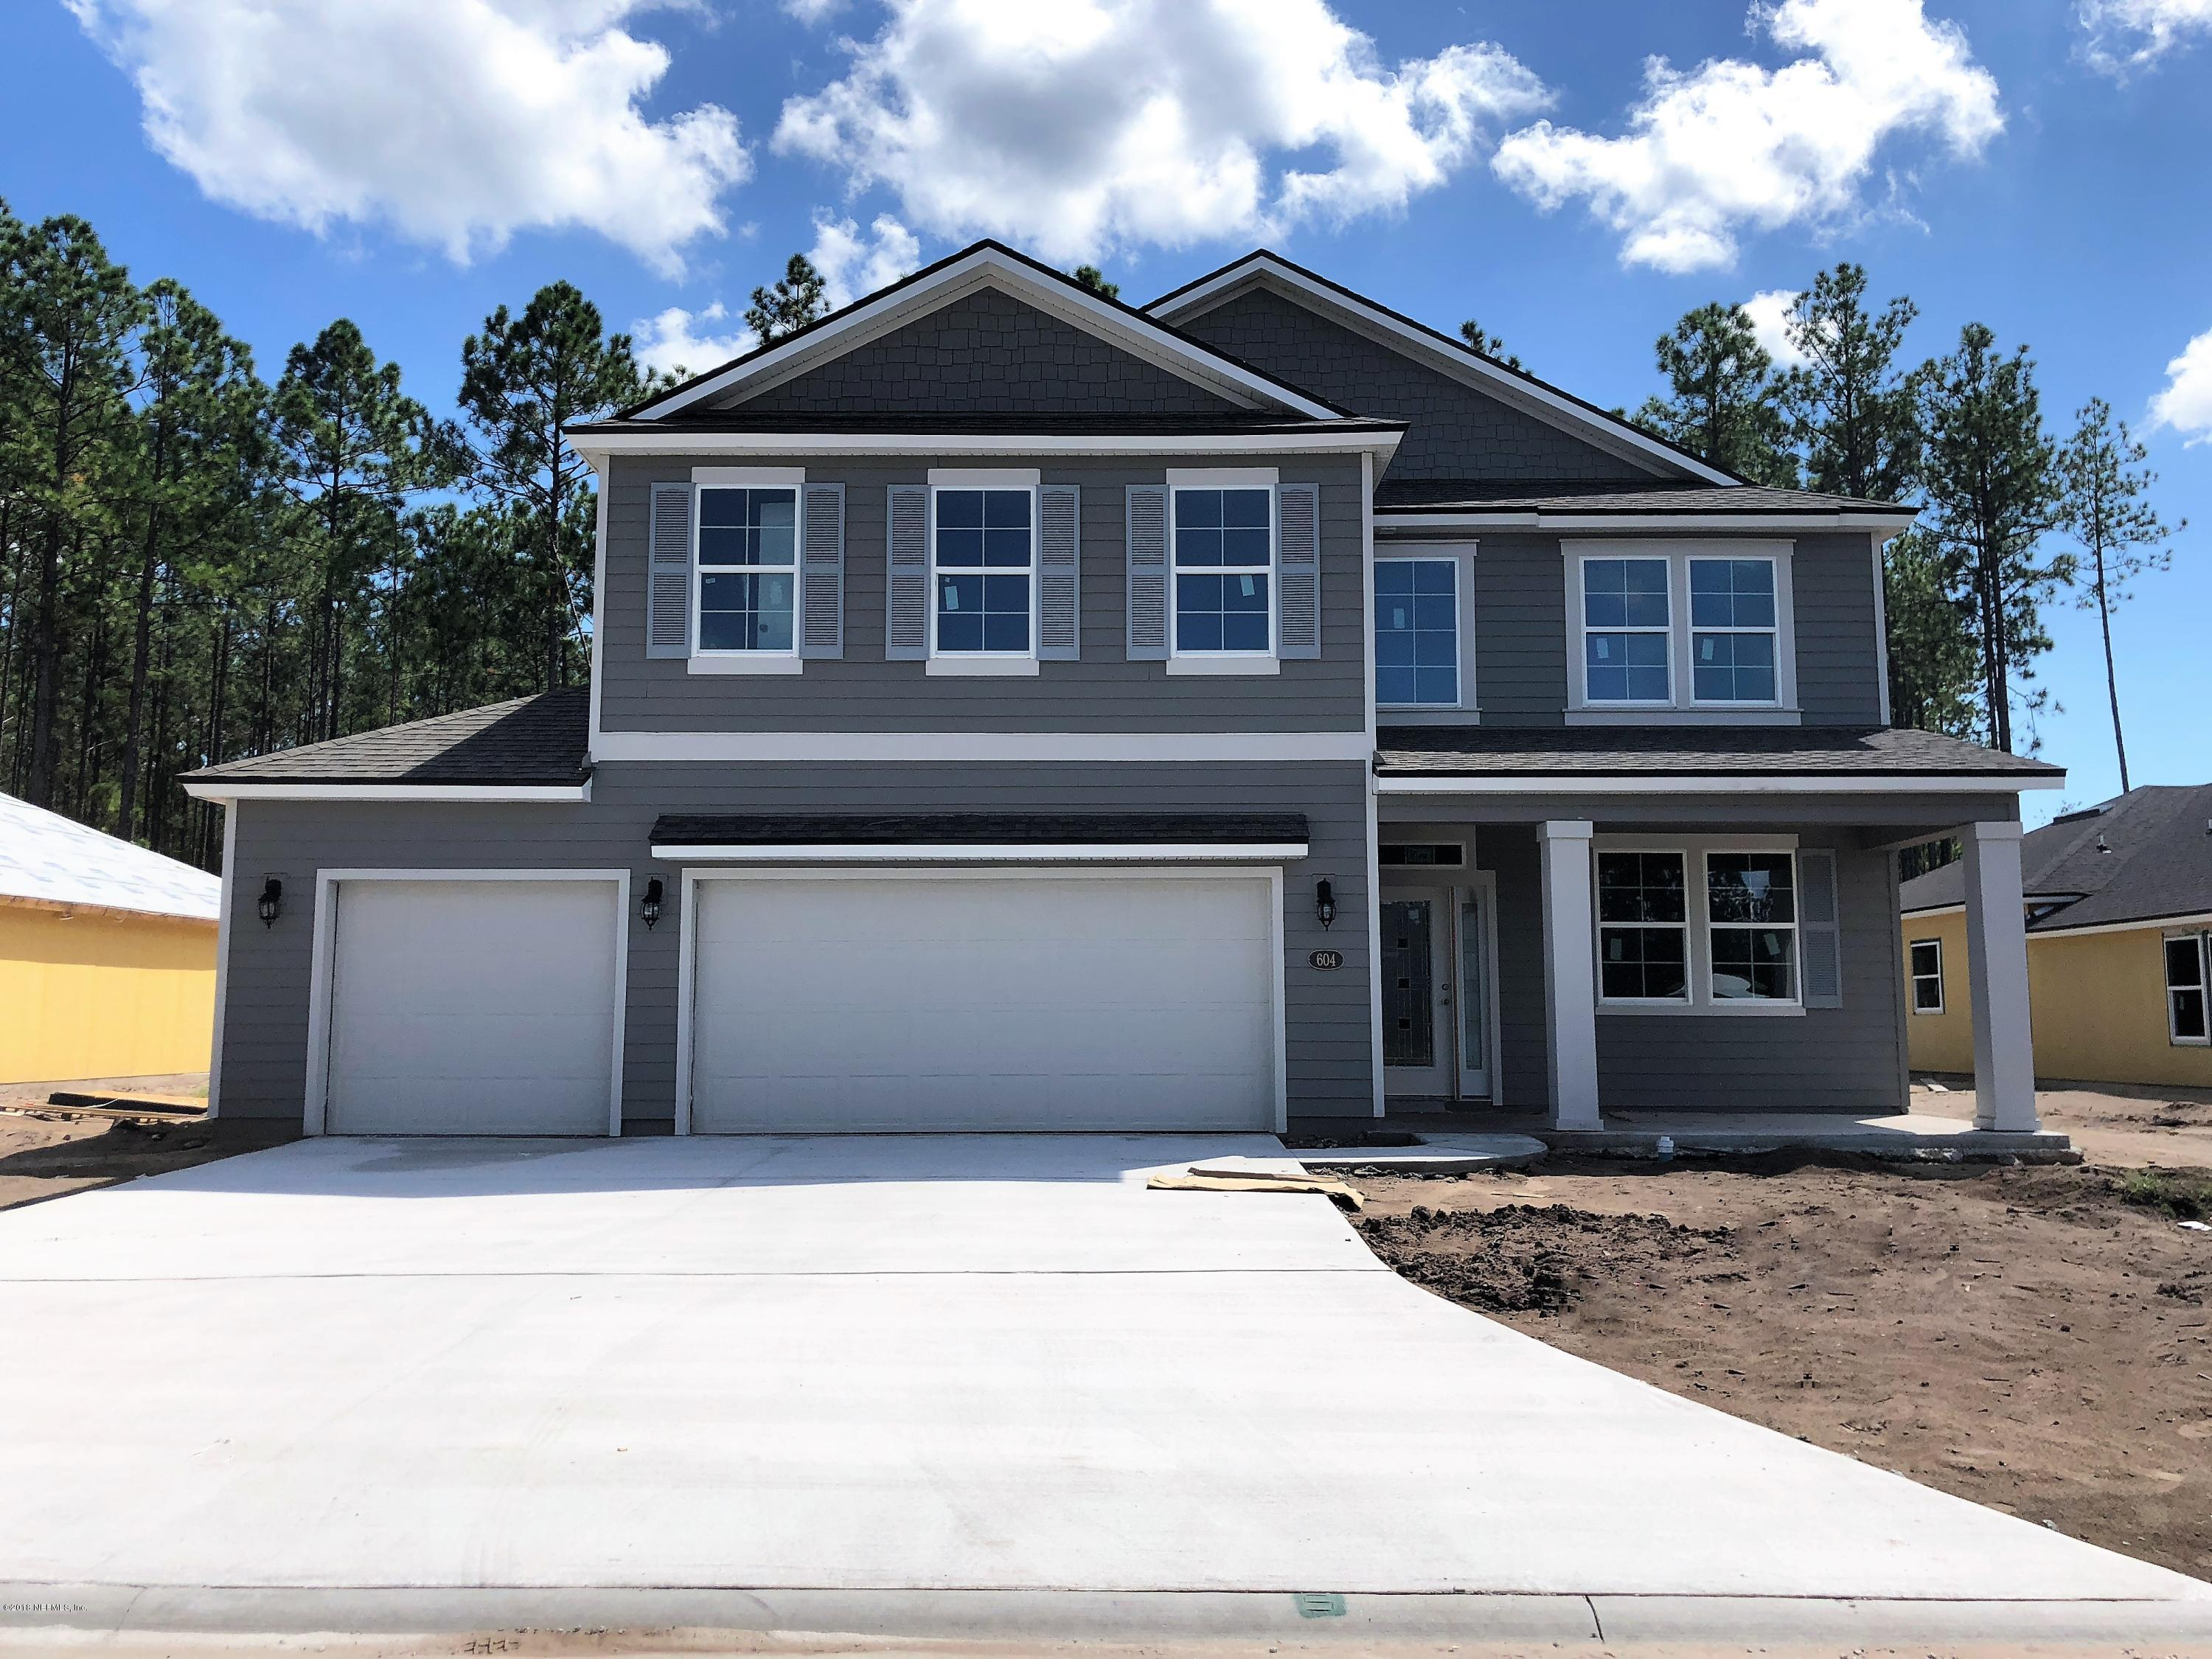 604 MELROSE ABBEY, ST JOHNS, FLORIDA 32259, 5 Bedrooms Bedrooms, ,3 BathroomsBathrooms,Residential - single family,For sale,MELROSE ABBEY,959436